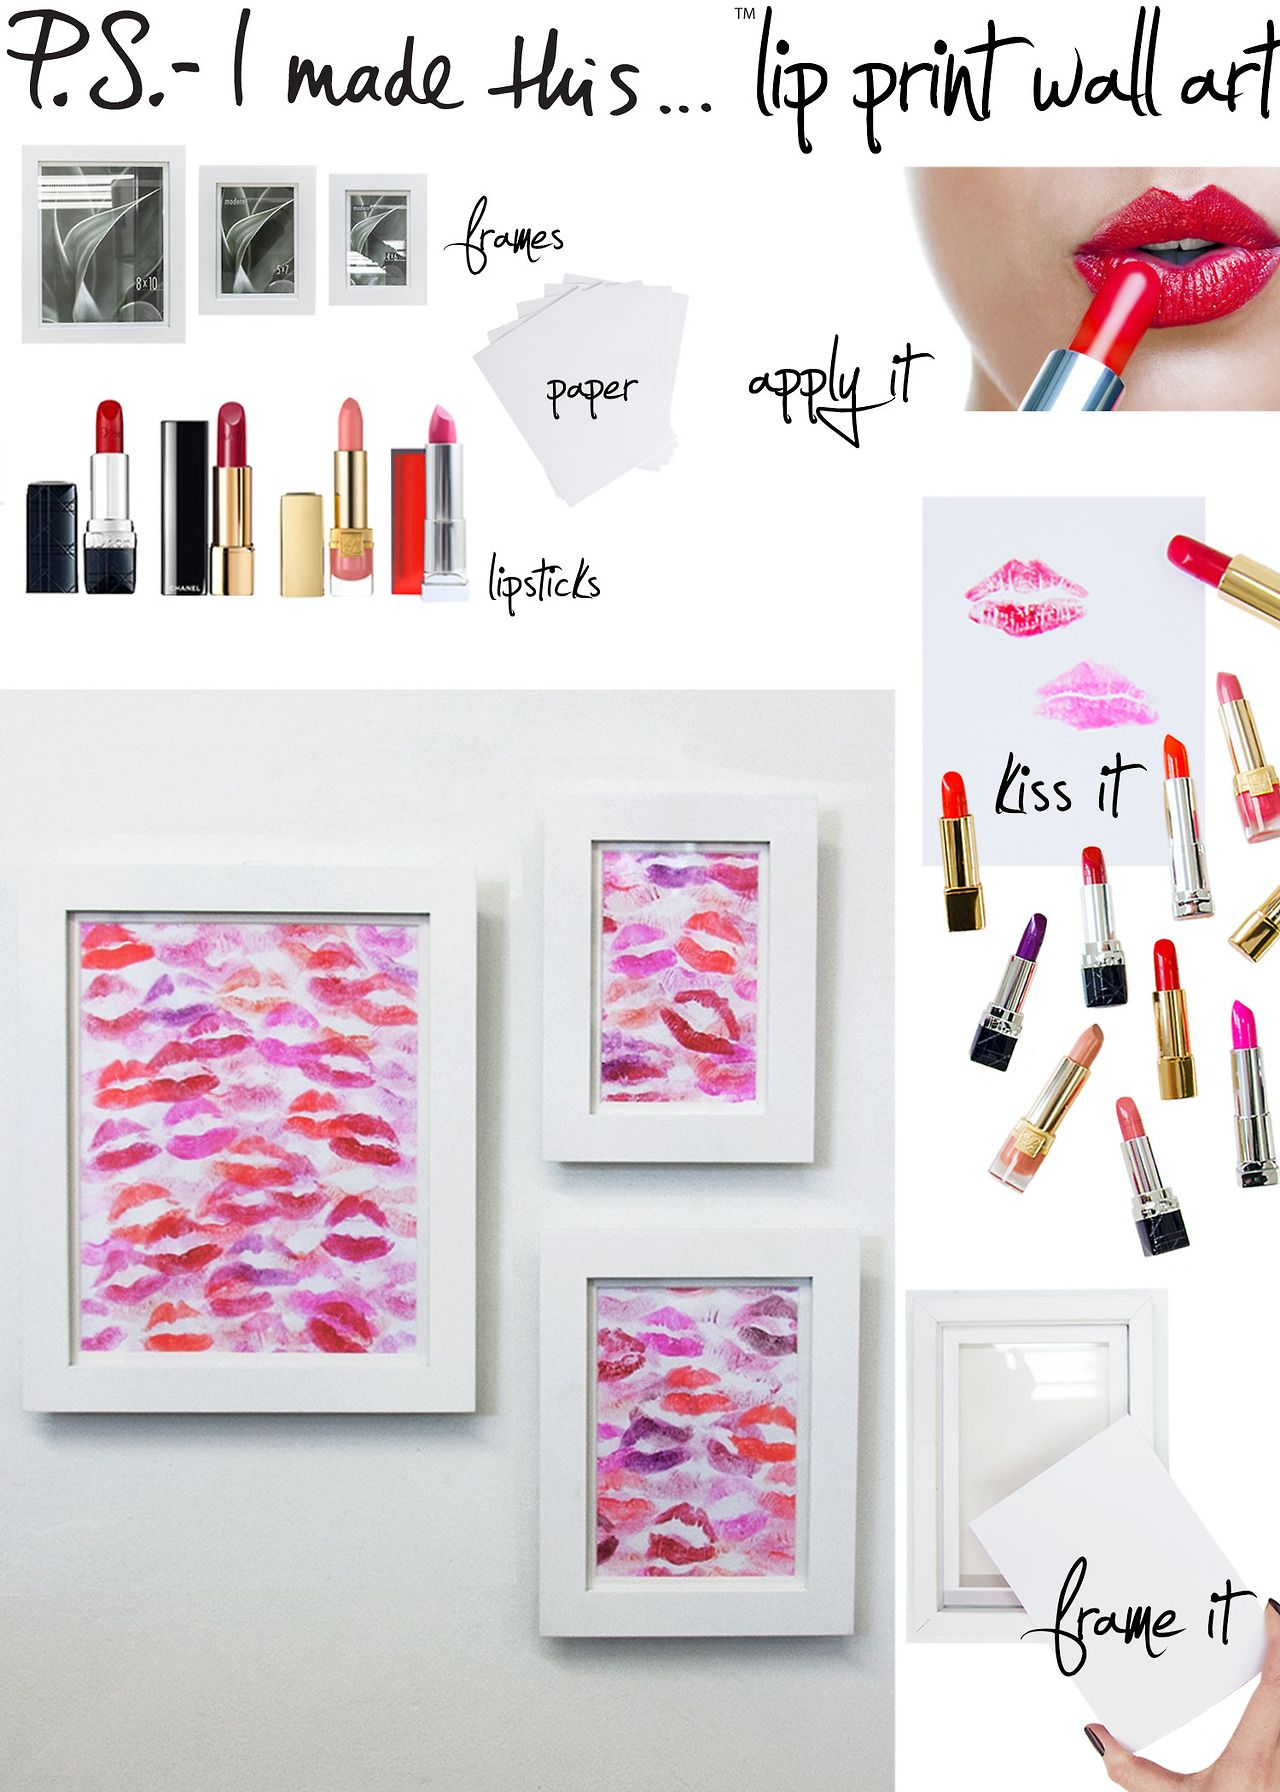 Pin by ariel rosen on goofiness pinterest wall art lipsticks